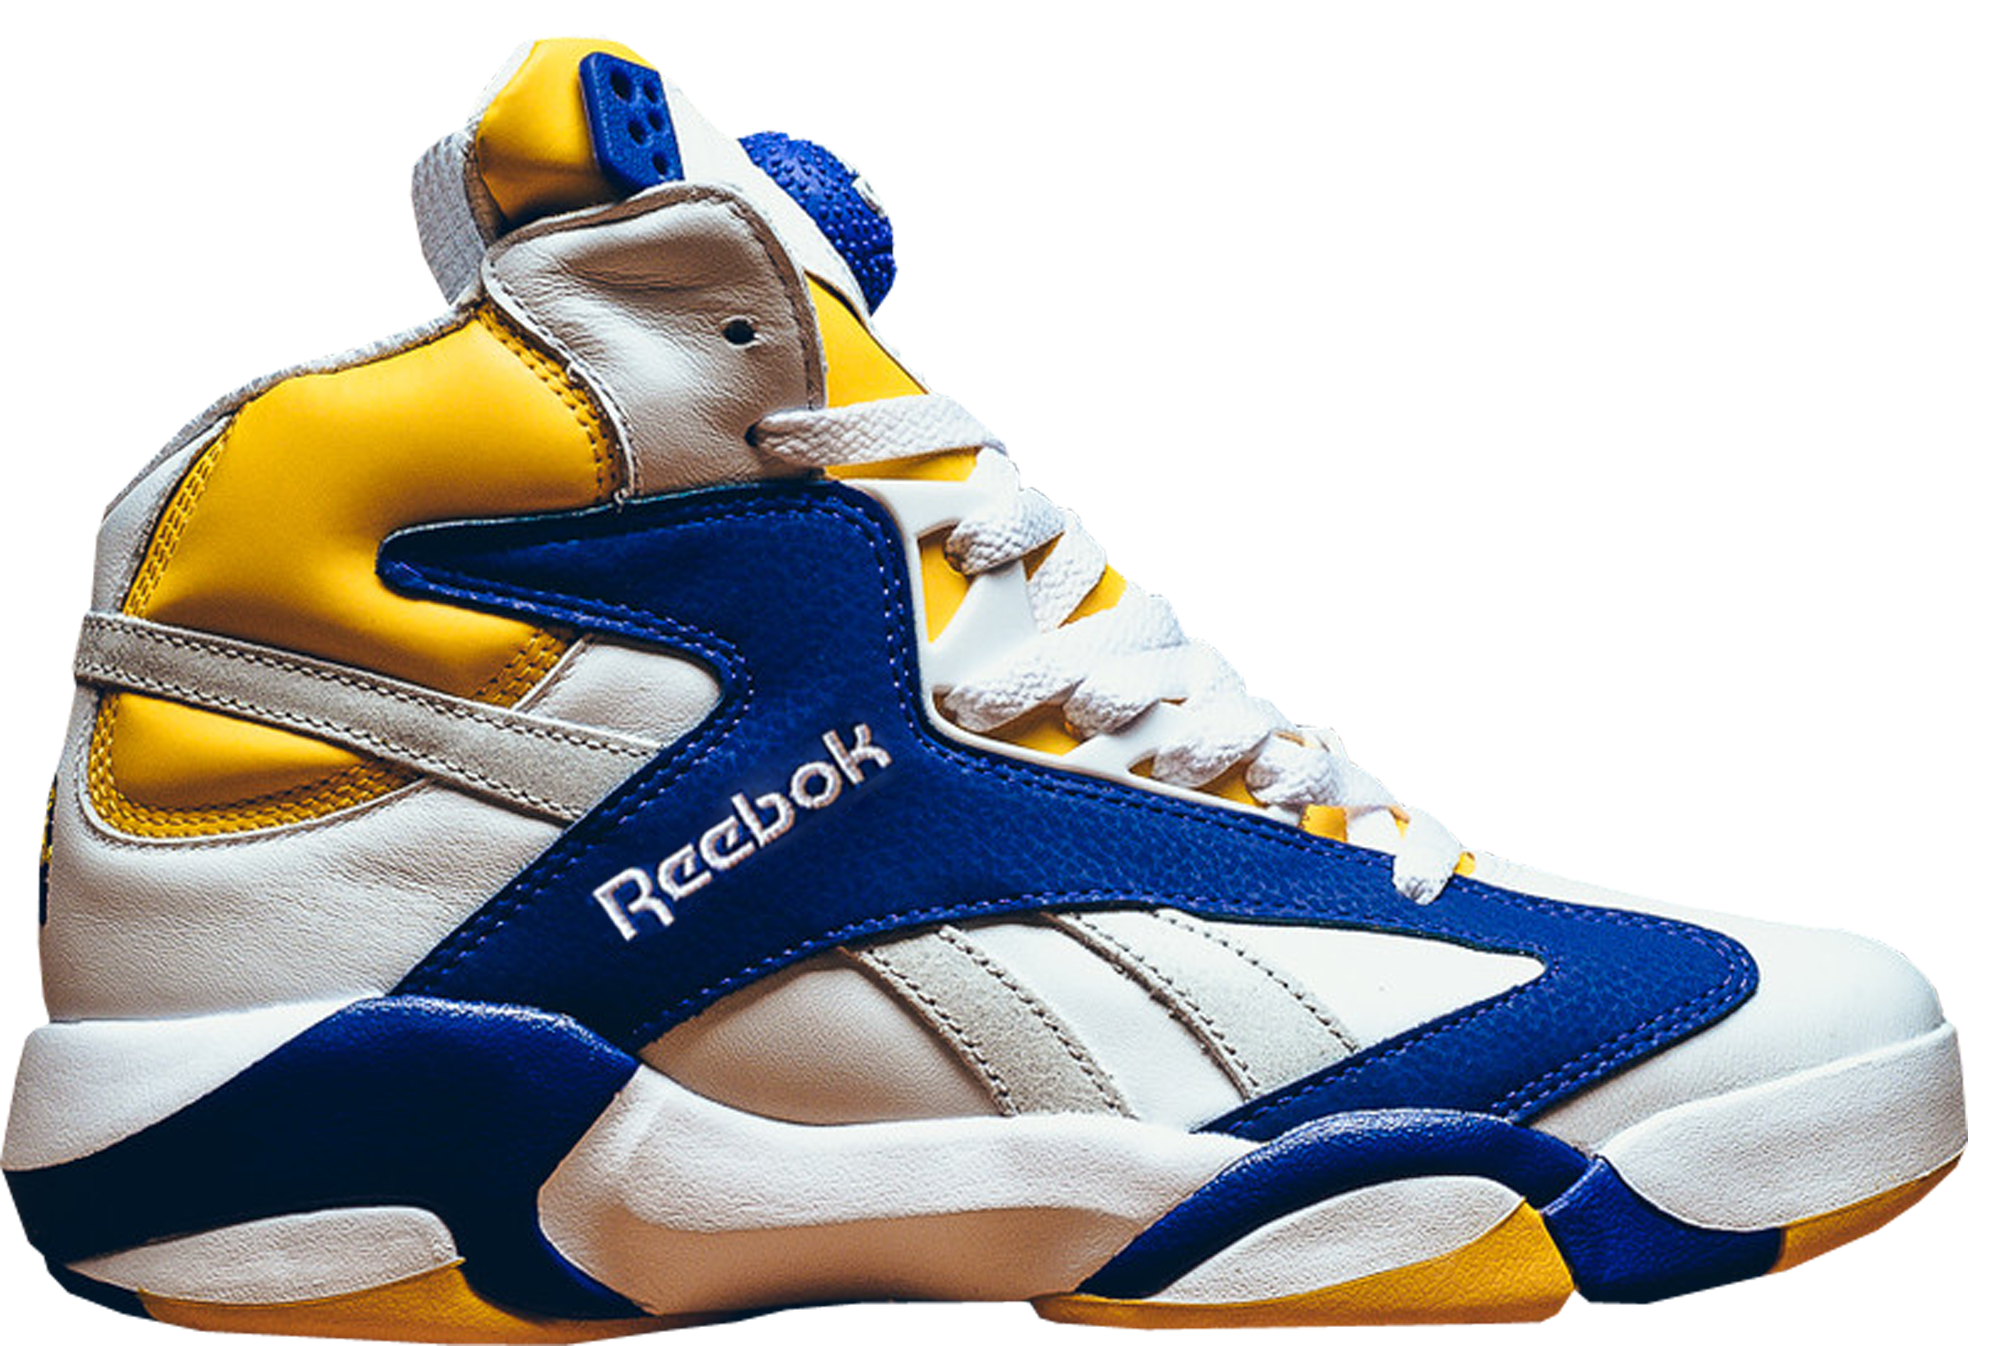 d286a1d7301 Sneaker Politics x Reebok Shaq Attaq OG Alma Mater LSU 25th Anniversary All  Star 2017